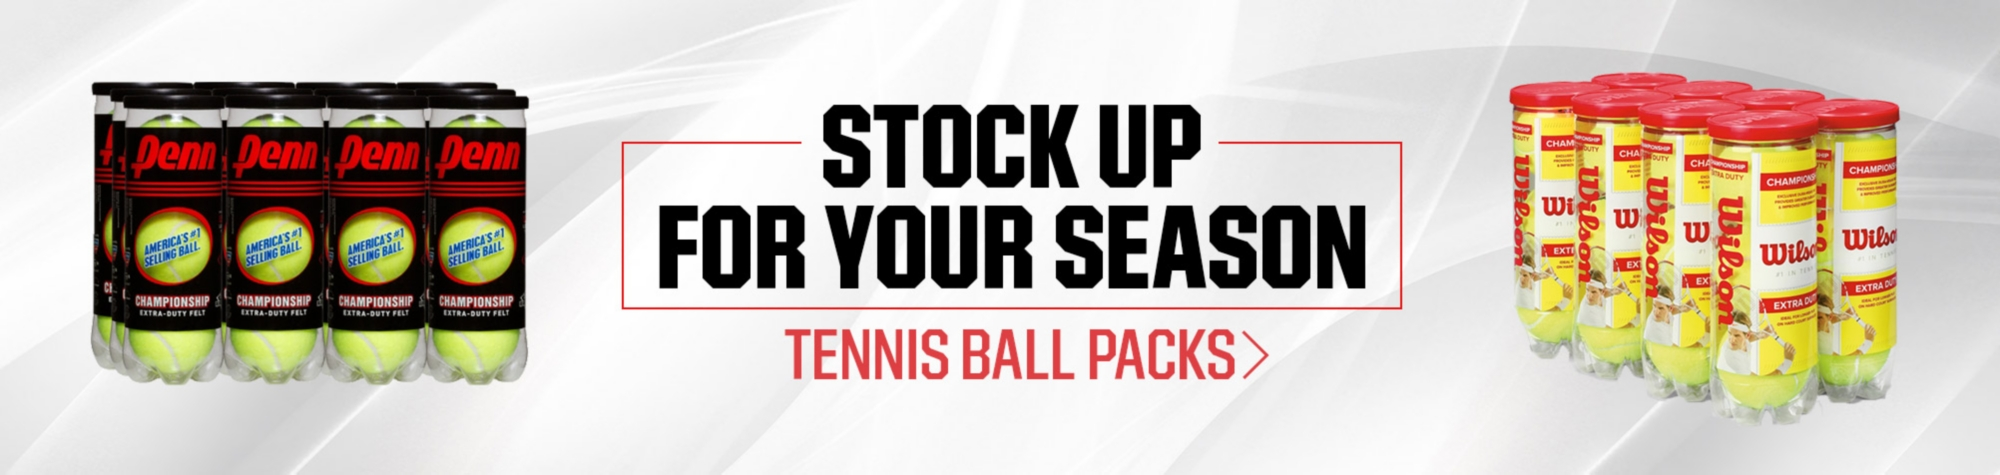 Shop Tennis Ball Packs